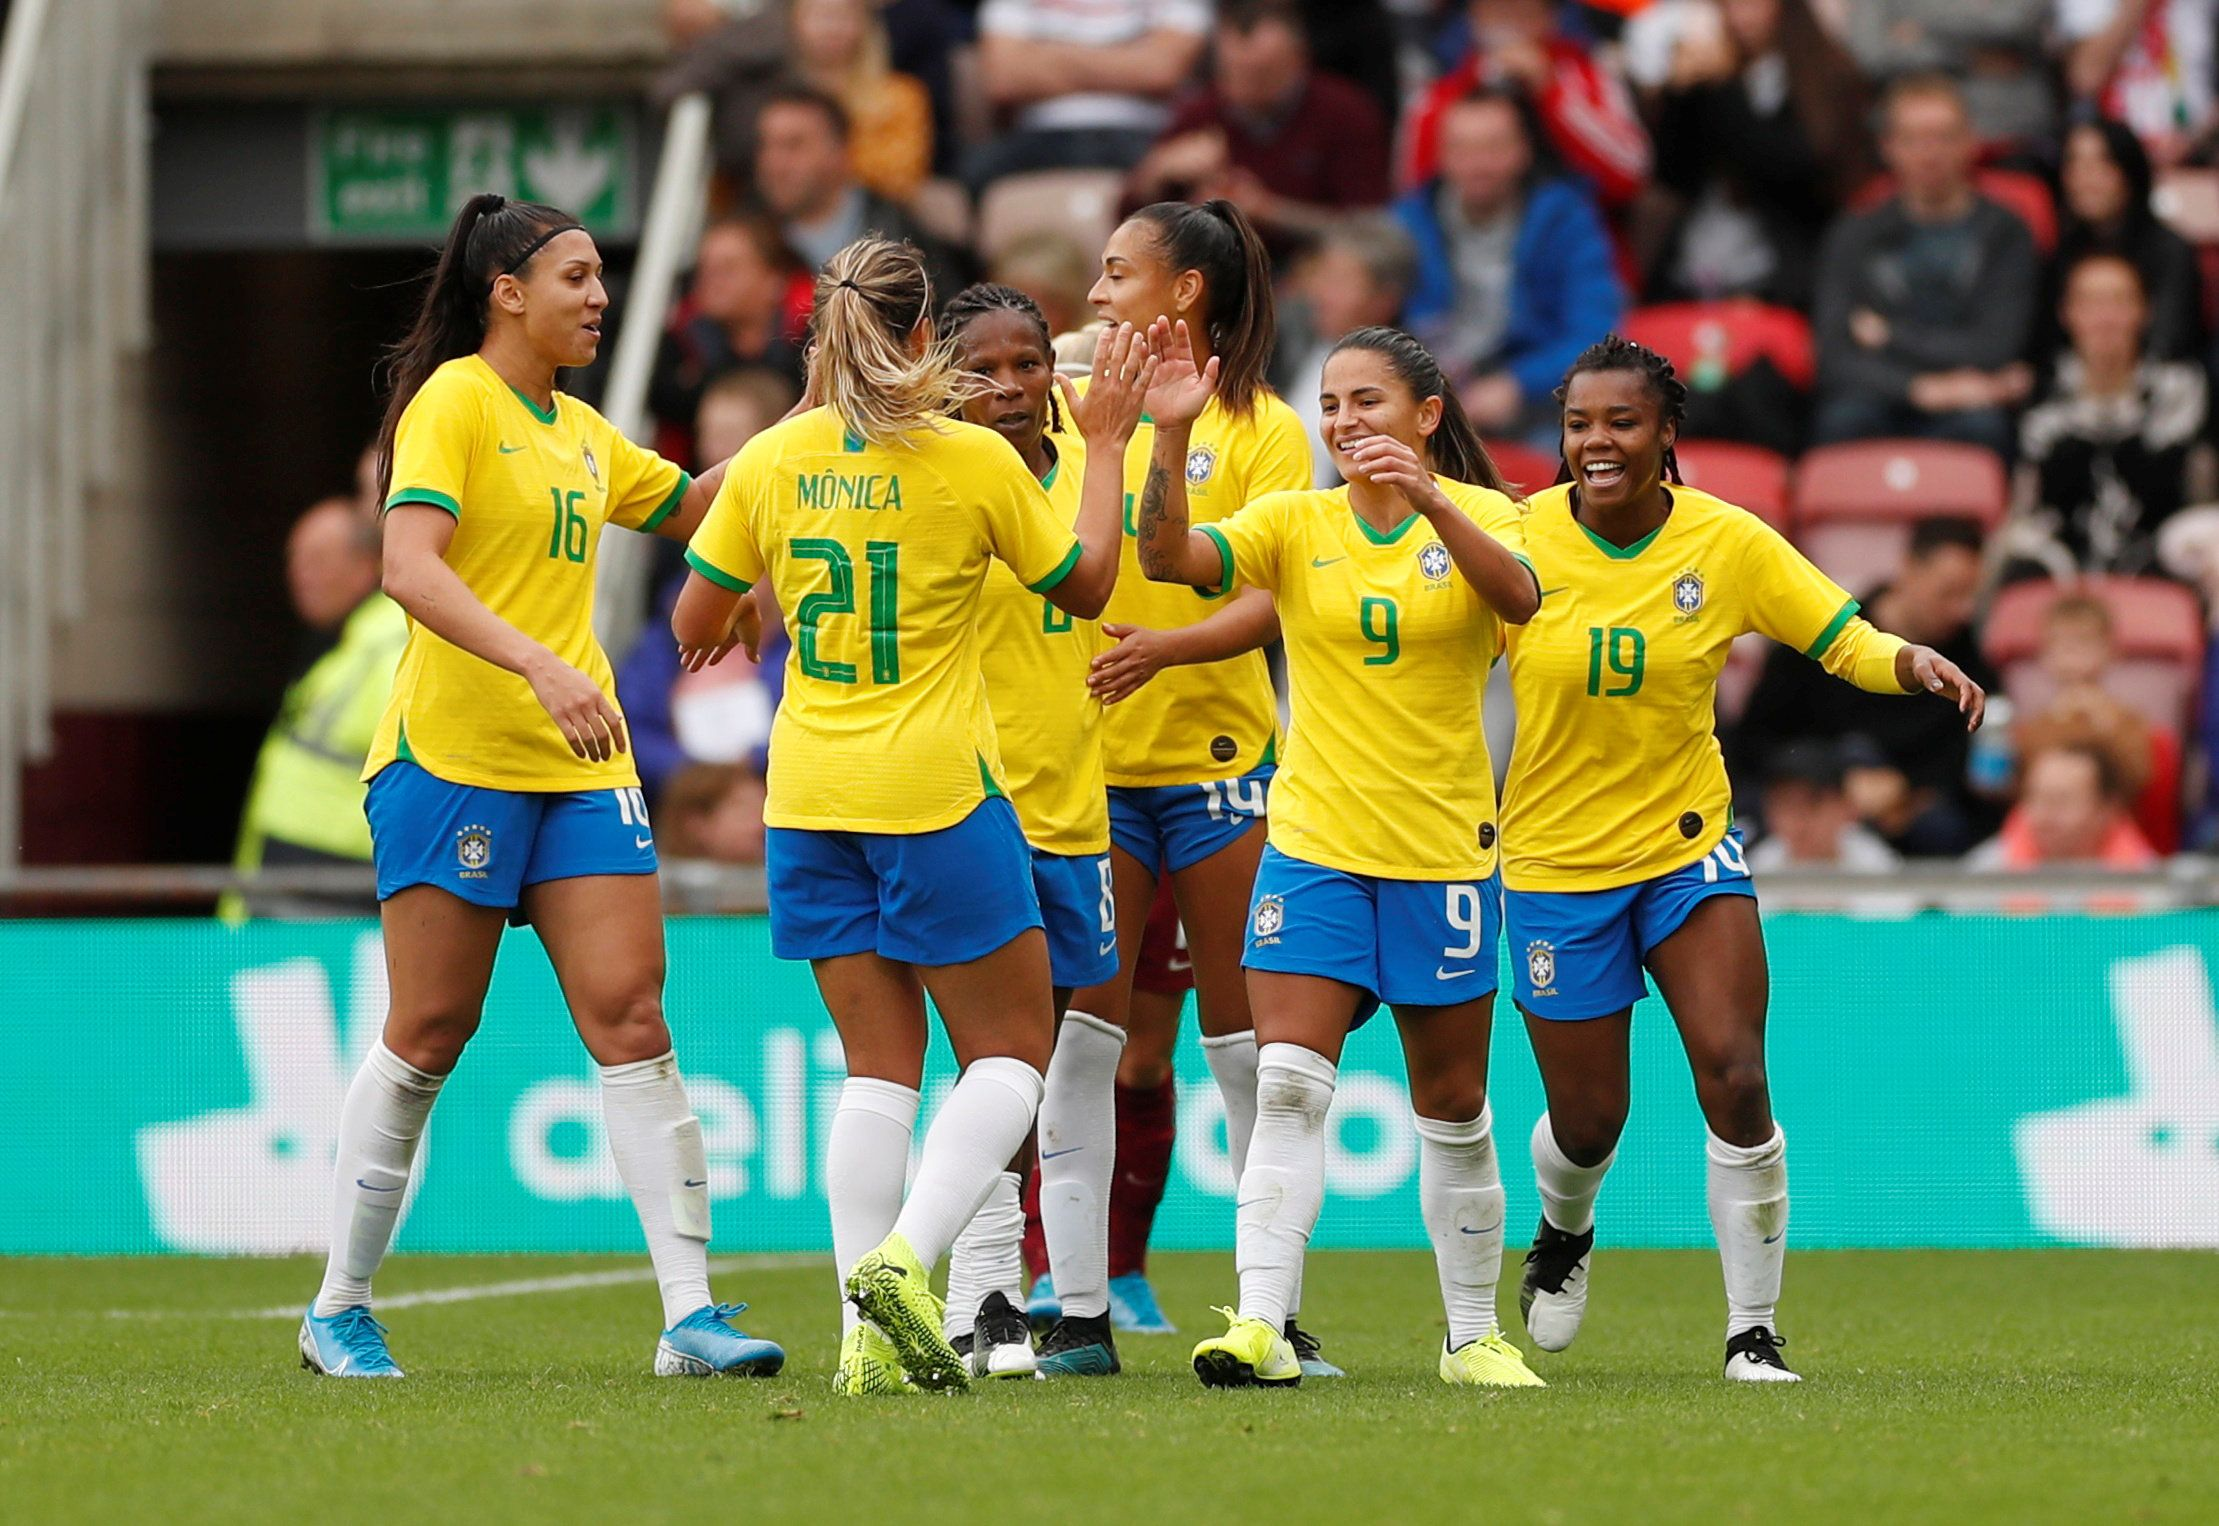 The Brazilian women's national football team during a friendly game with England in Middlesbrough, UK.